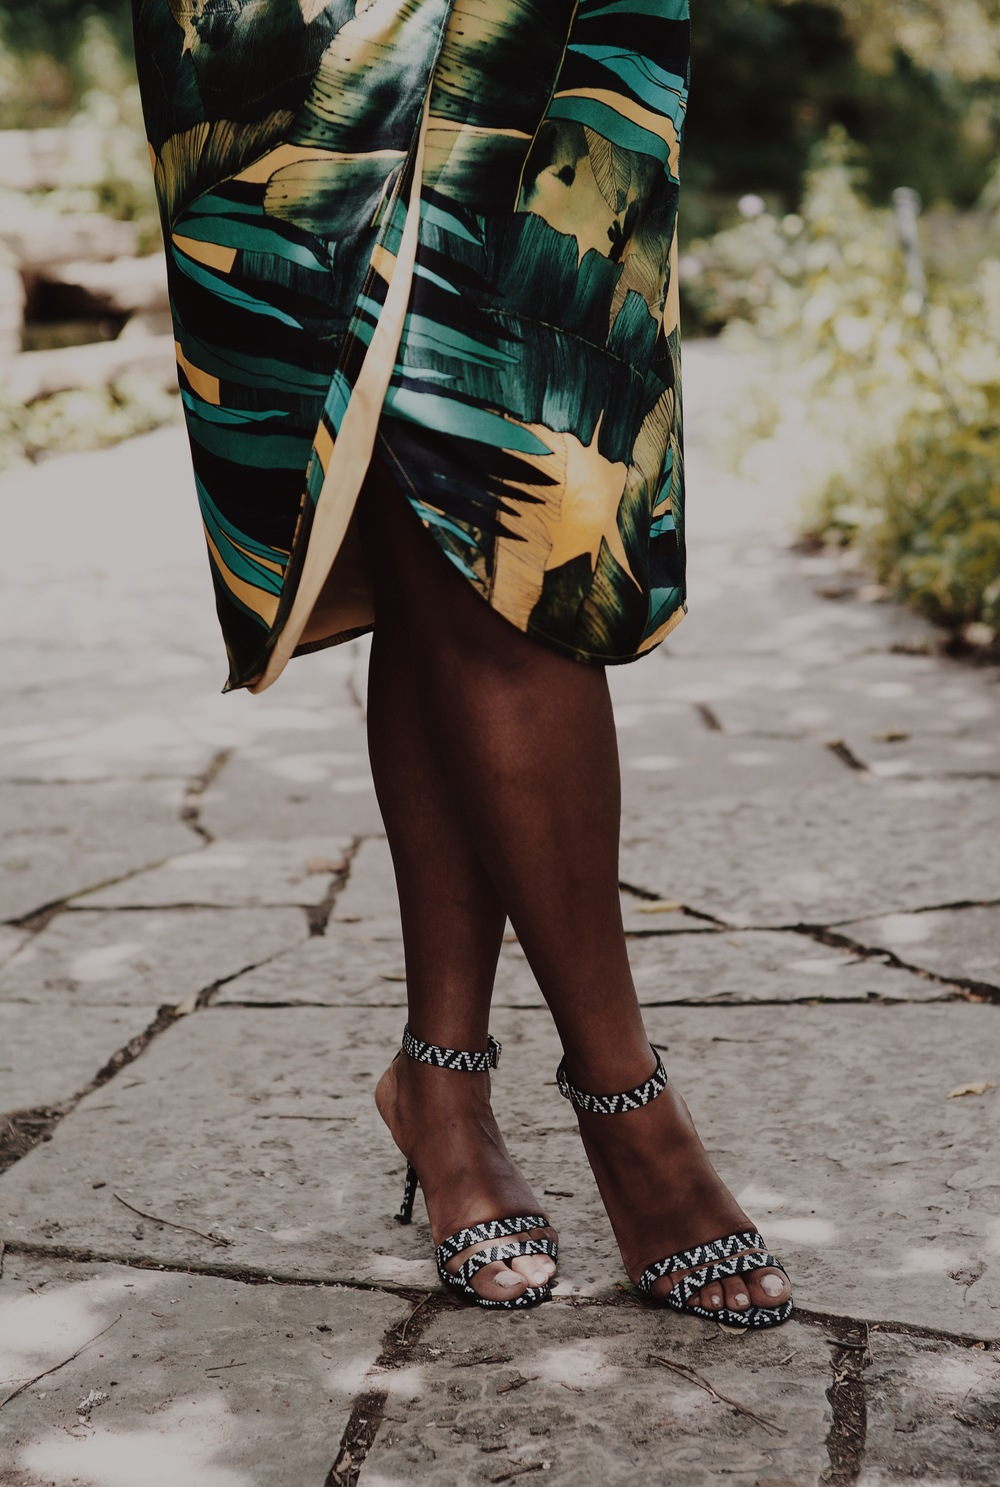 Jcrew Jungle Print Swimsuit Faux Tulip Wrap Skirt Double strap Heel Sandals Ikat Print Plus size Blogger Orne Jewelry Ghana THat Hayet Rida 3.jpeg